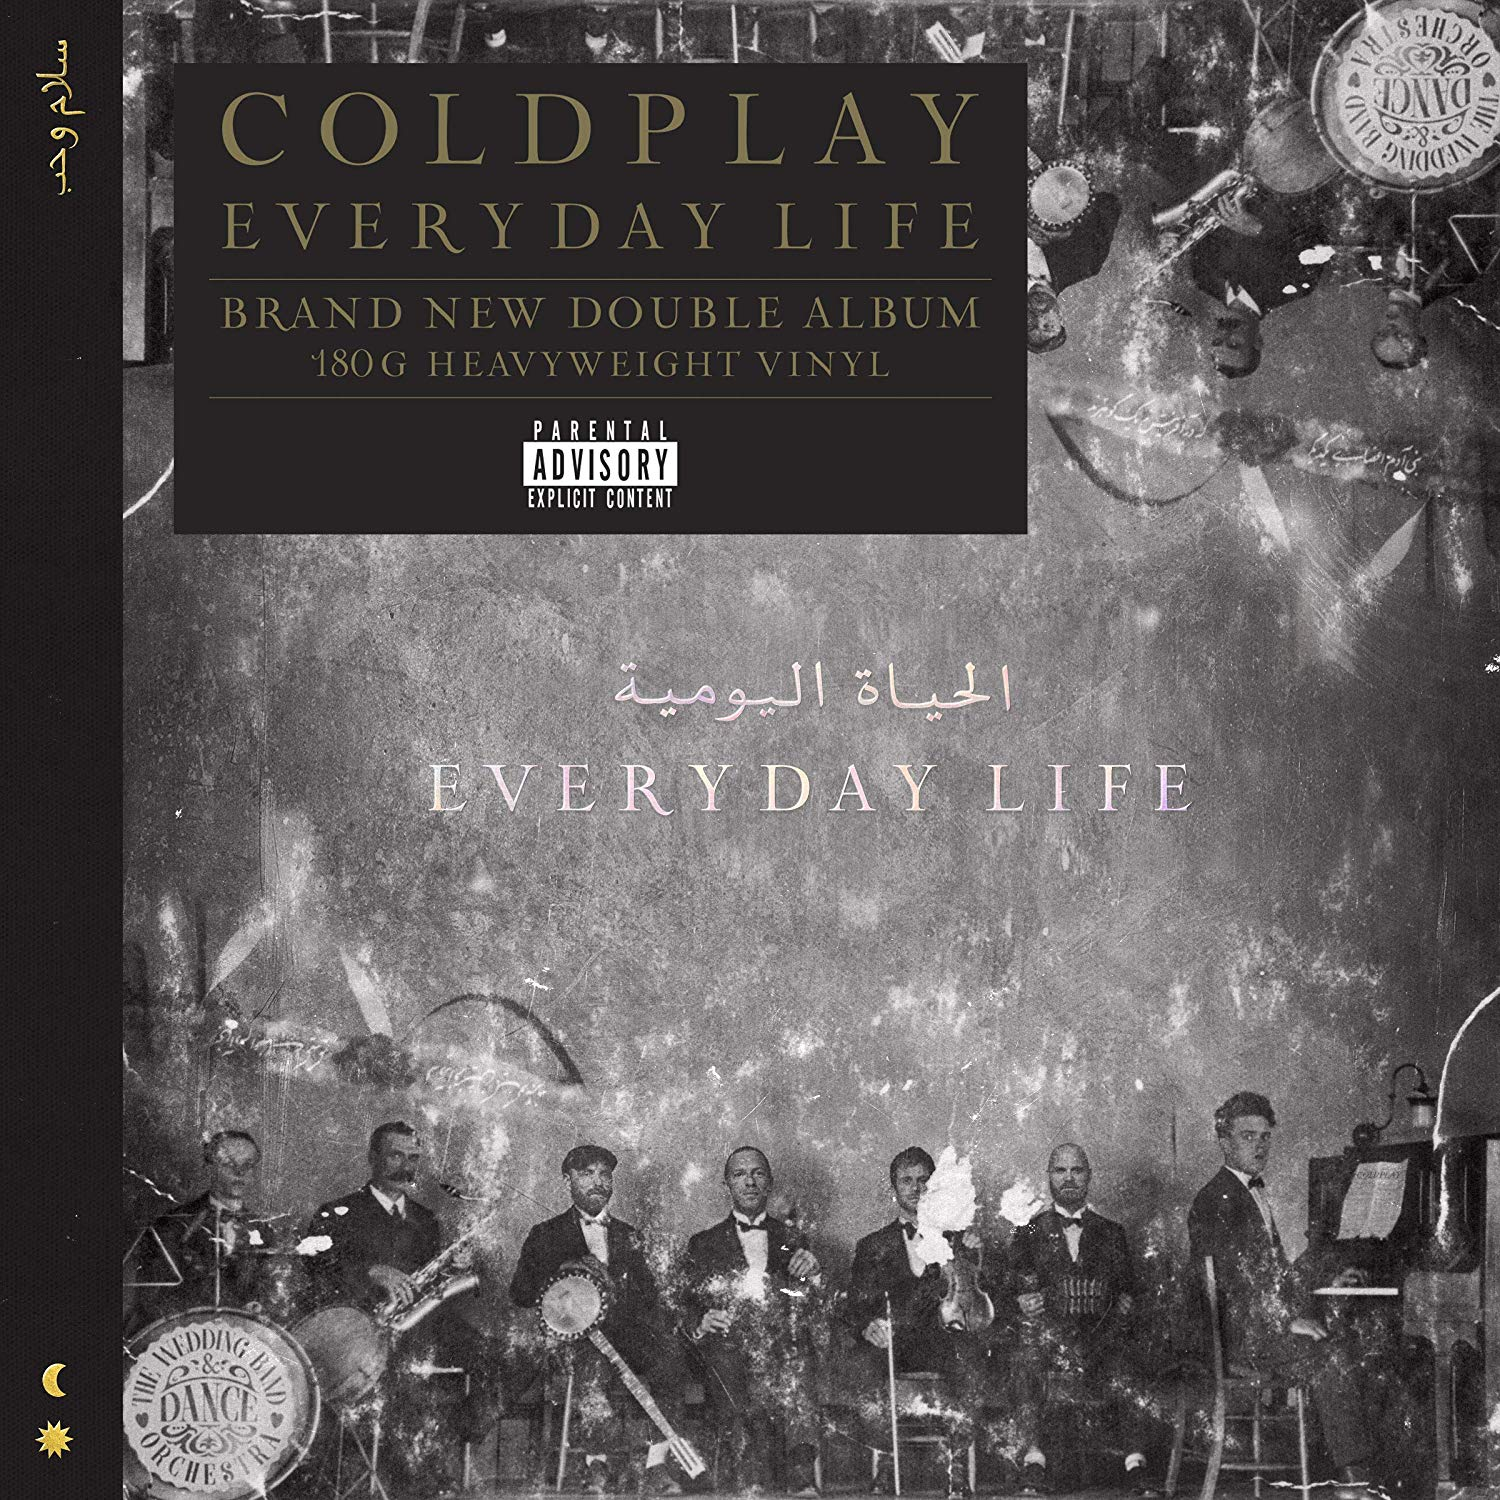 Coldplay Everyday Life album 2019 cover